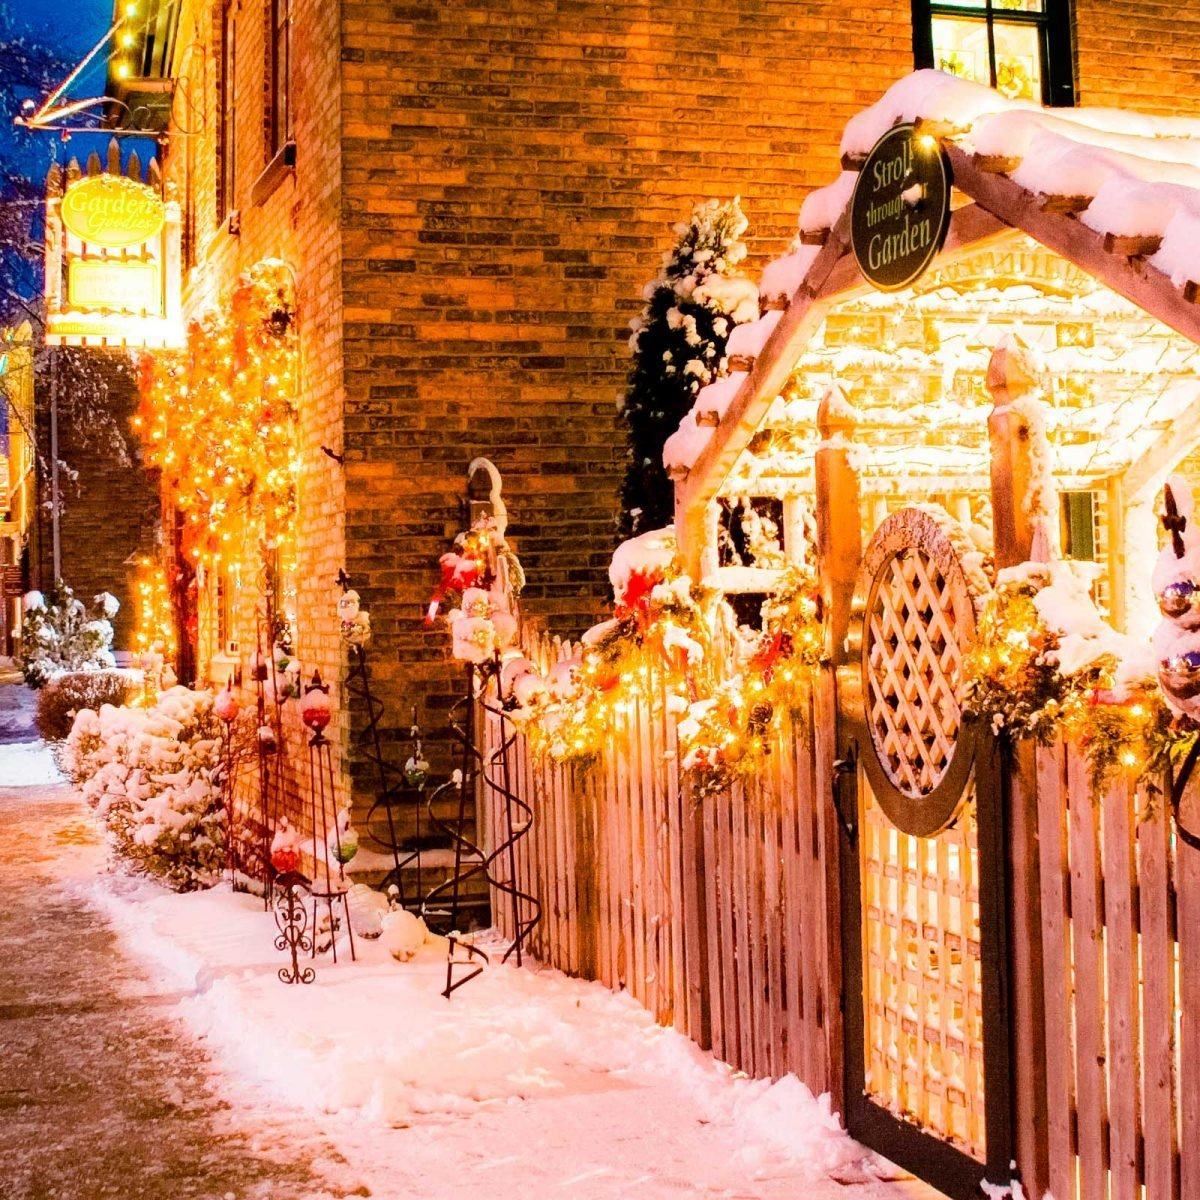 Christmas Towns.Christmas Towns With The Most Holiday Spirit Reader S Digest